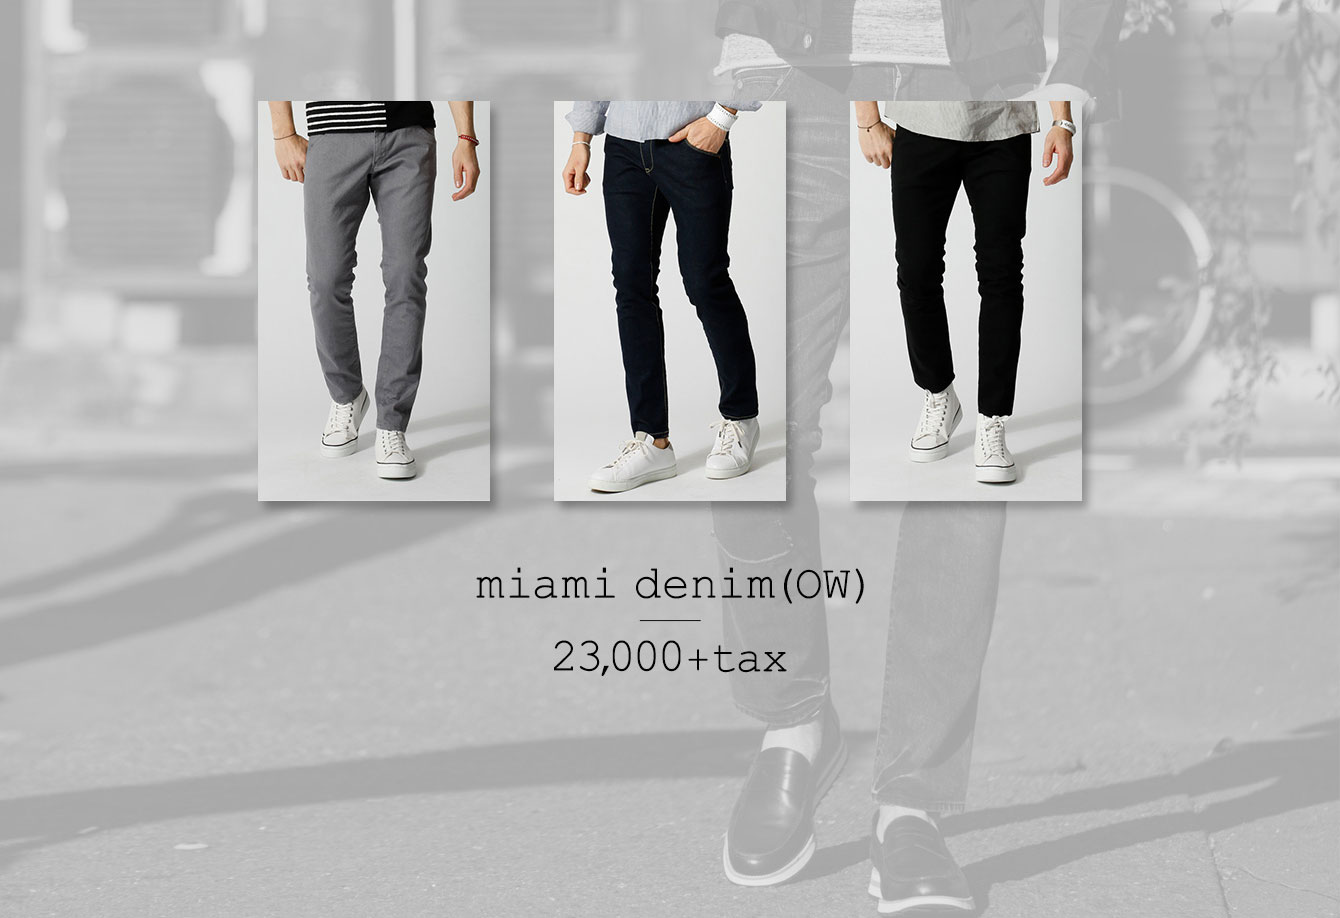 miami denim(OW) 23,000+tax